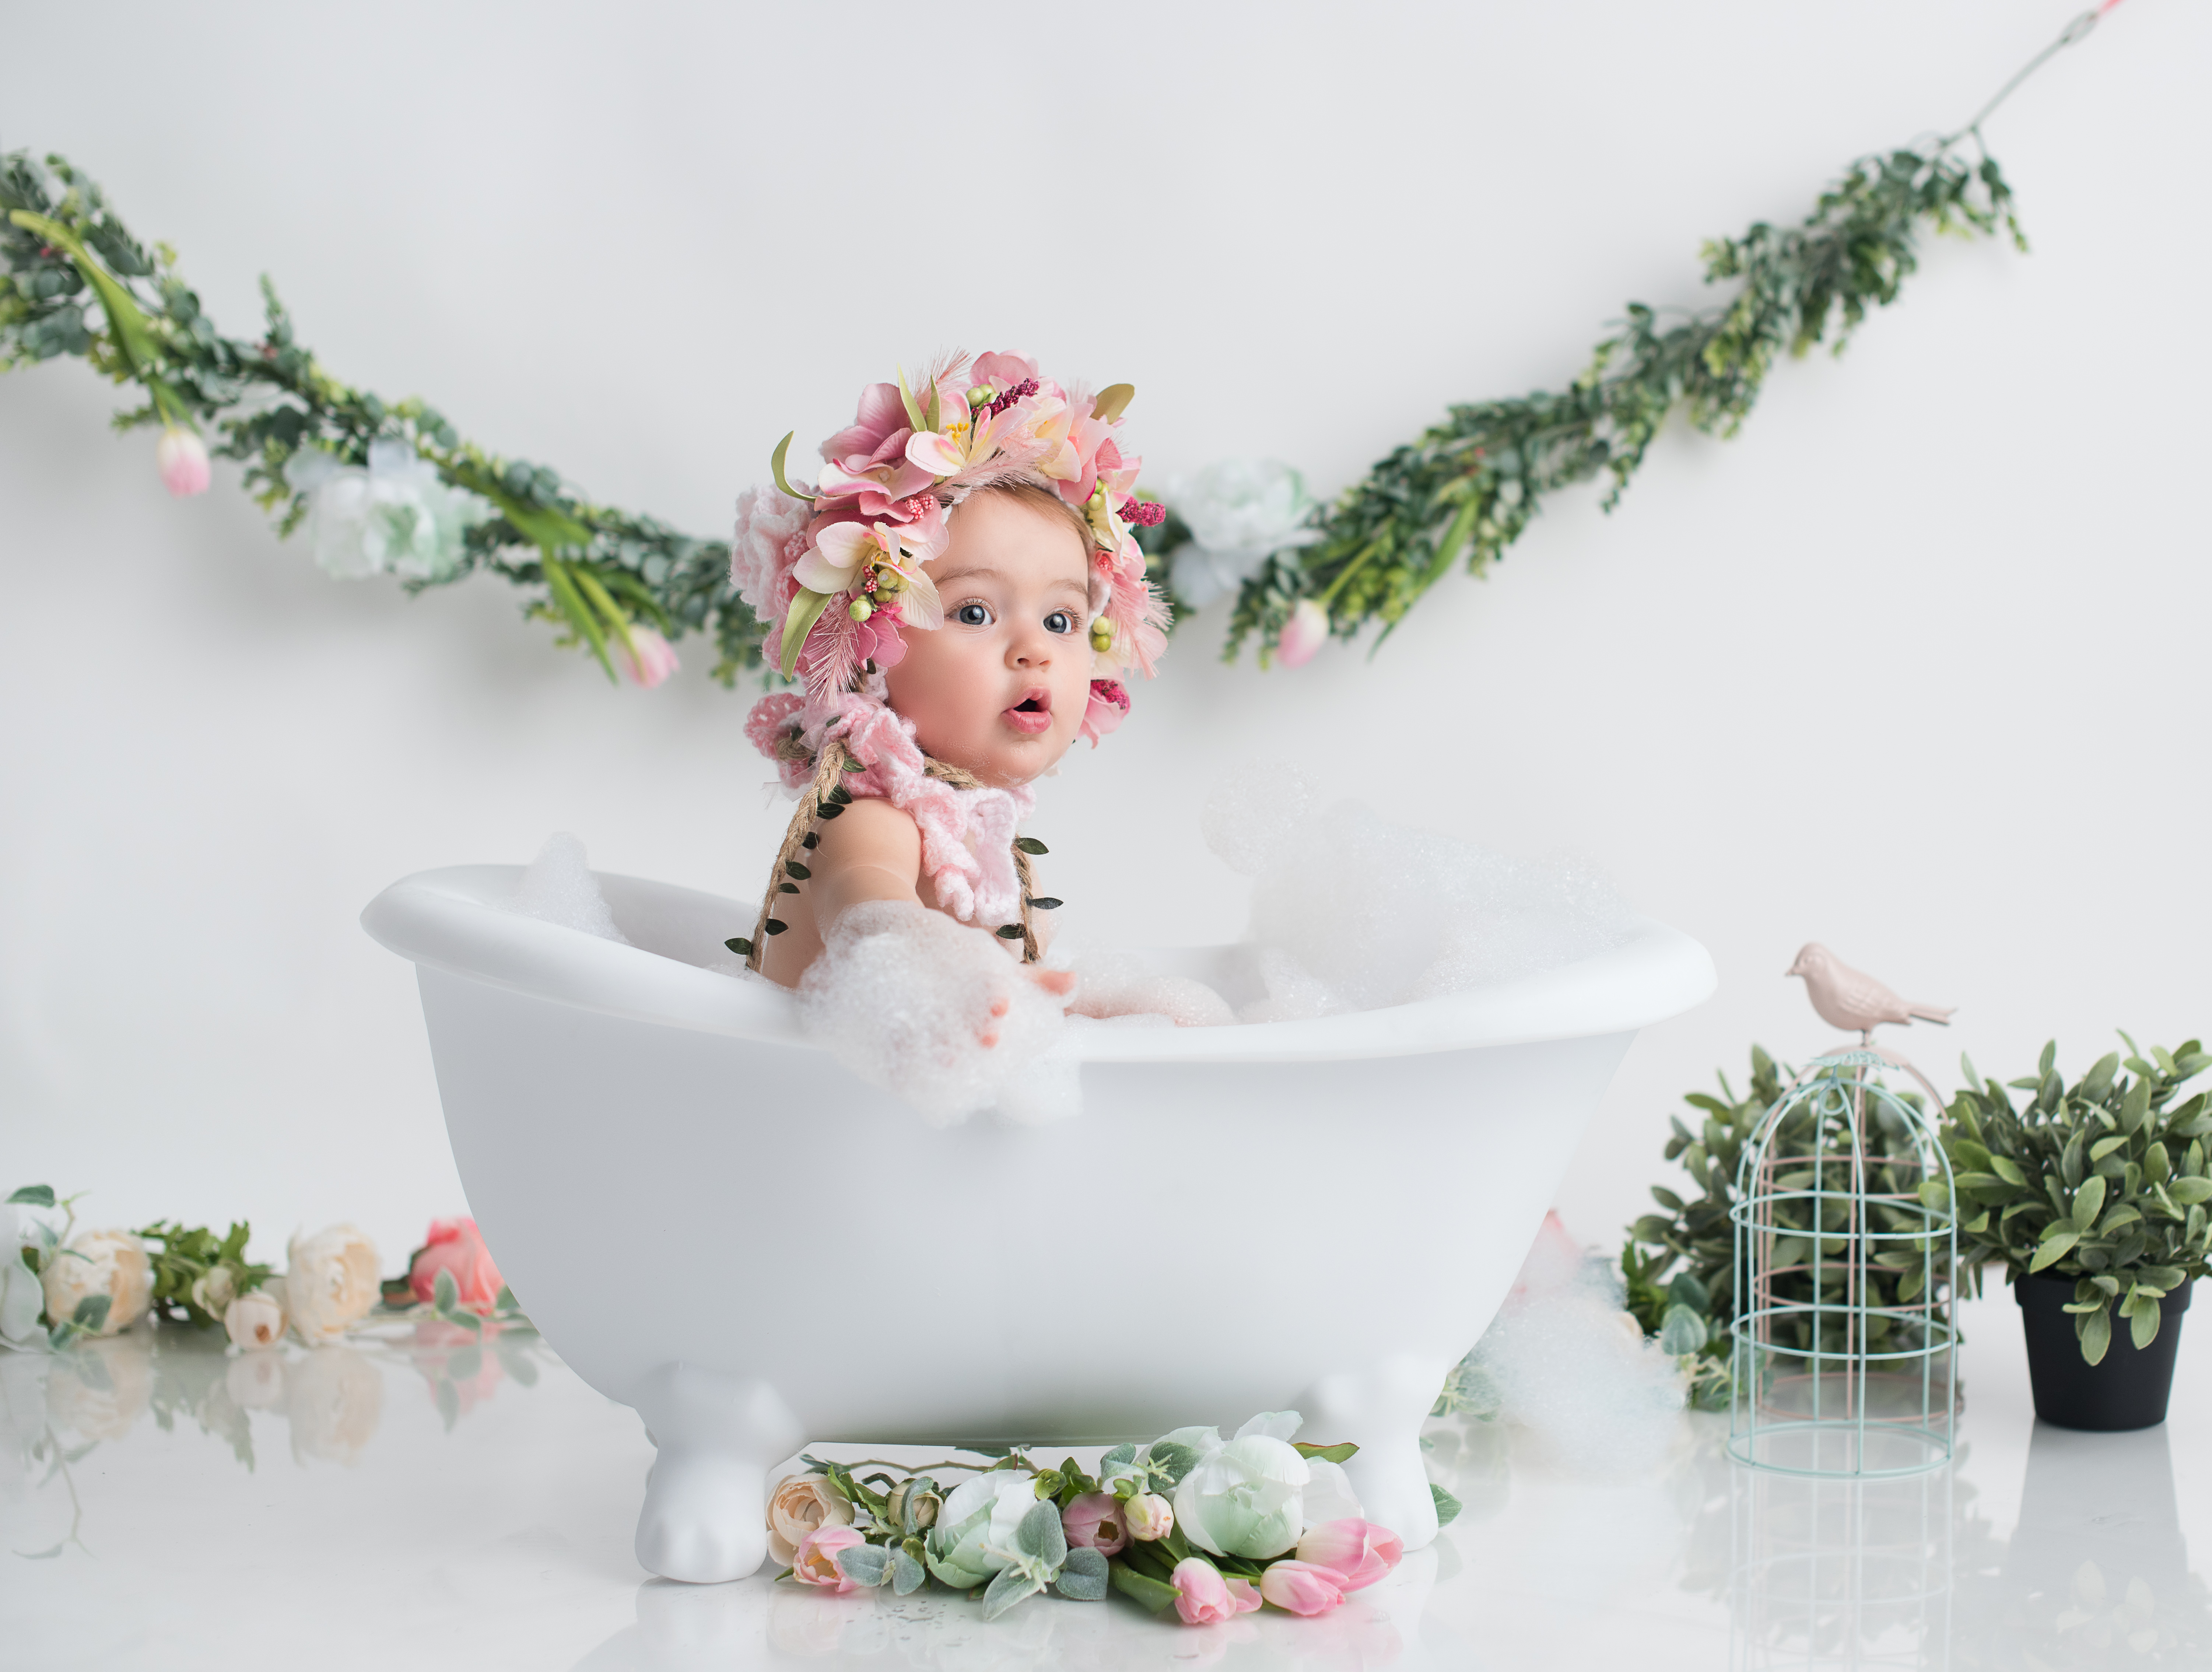 baby in tub